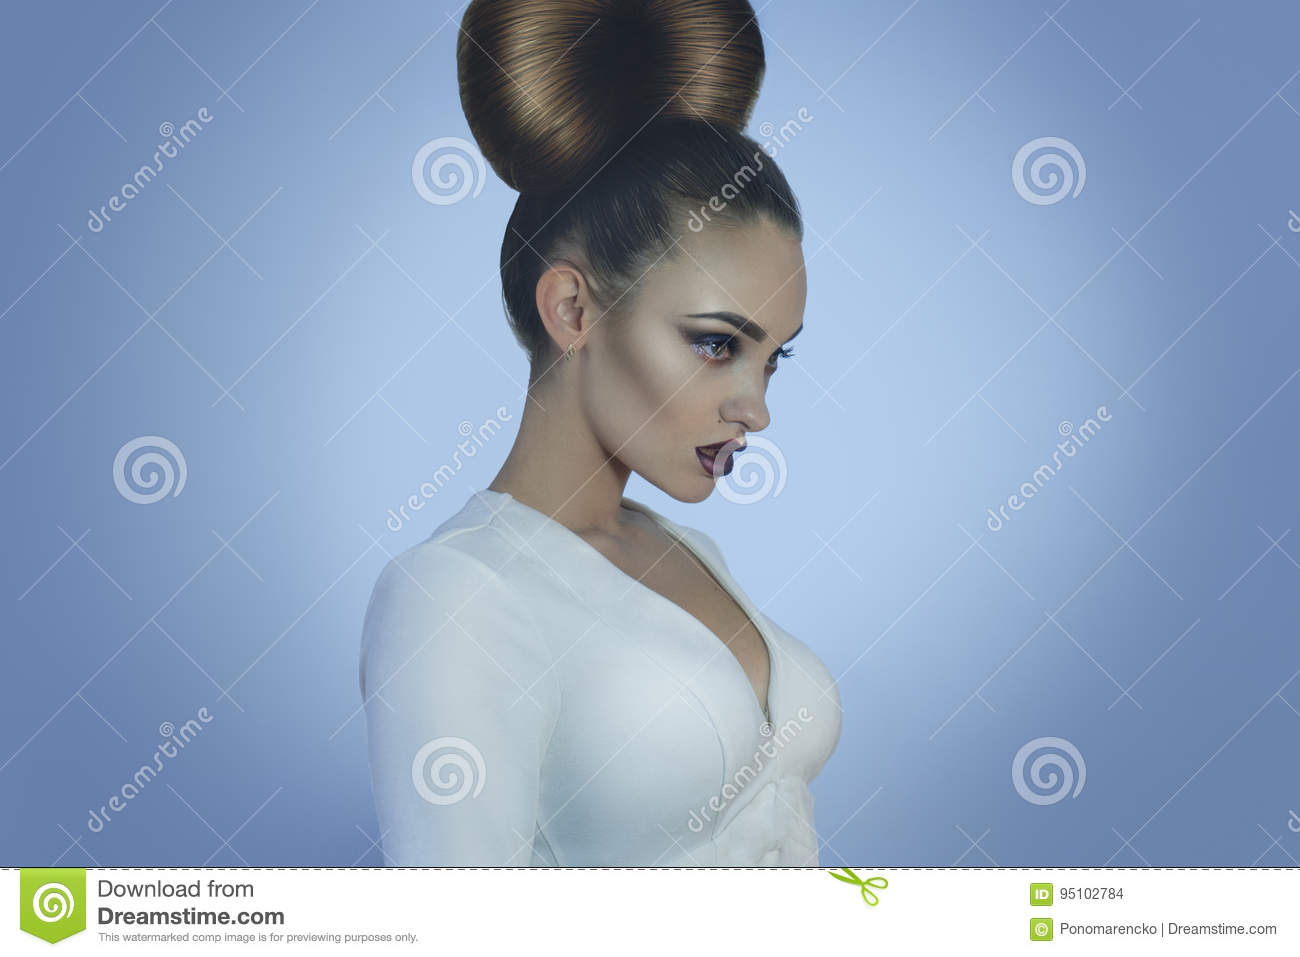 Glamour young lady with creative hairstyle and make up